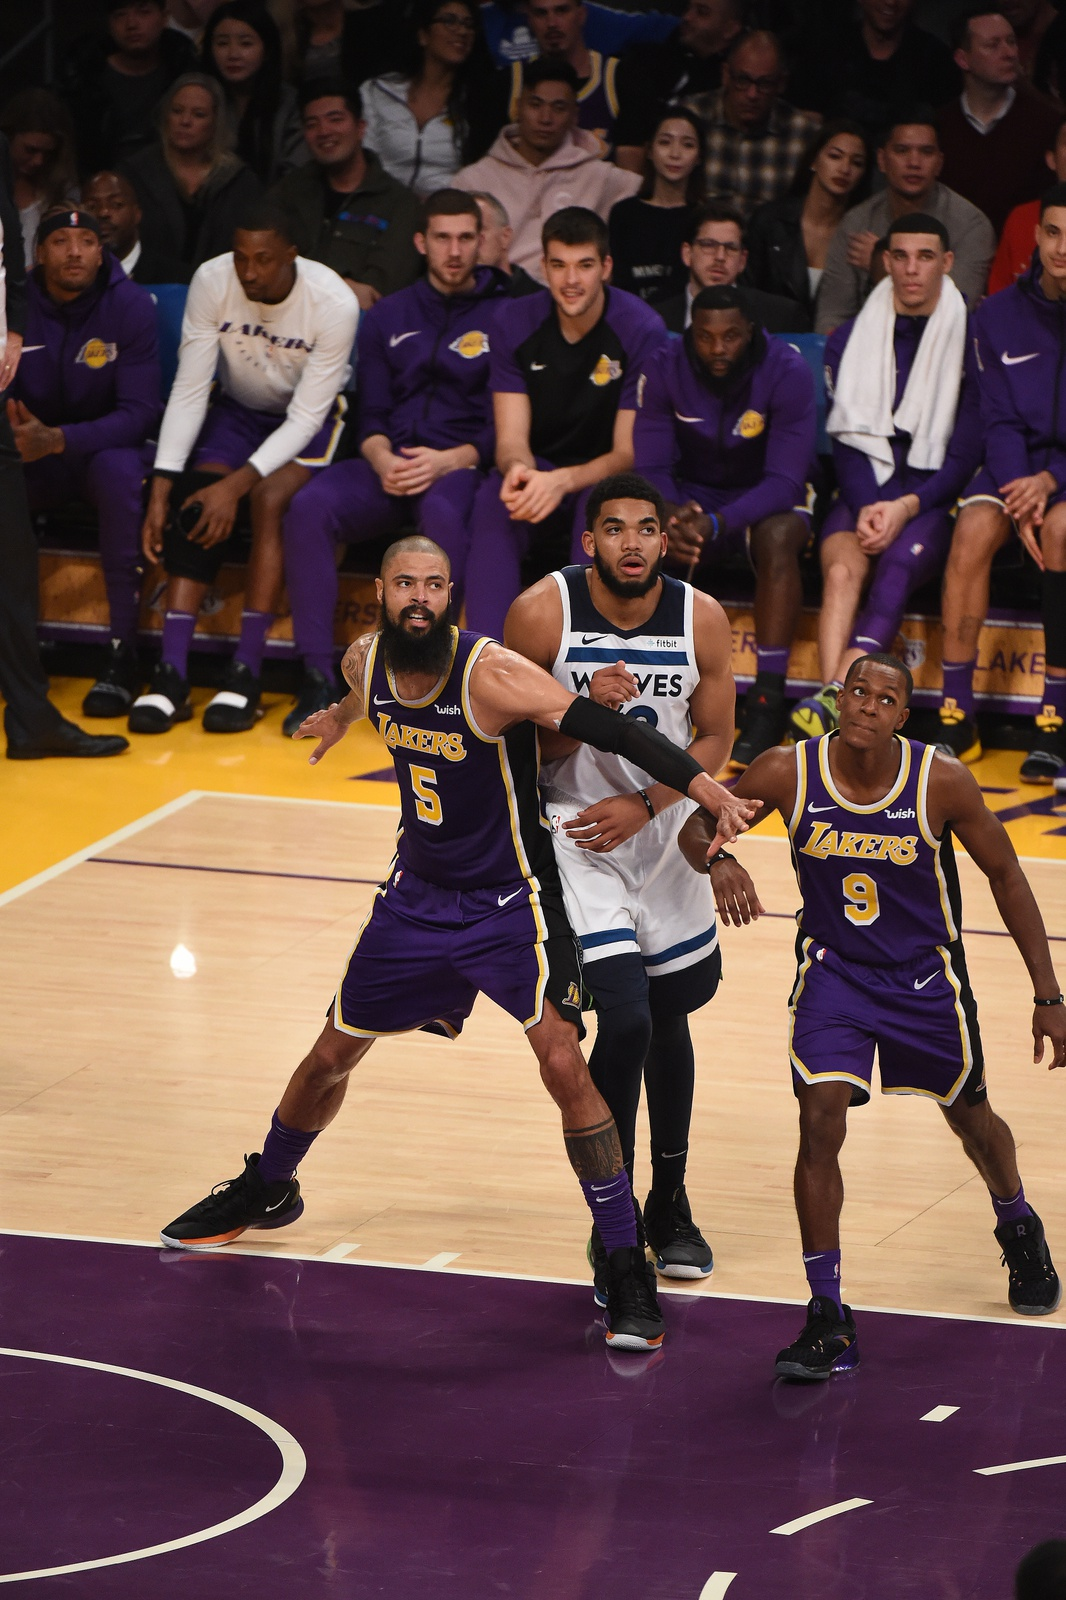 Tyson Chandler #5 of the Los Angeles Lakers fights for position against Karl-Anthony Towns #32 of the Minnesota Timberwolves on November 7, 2018 at Staples Center in Los Angeles, California.